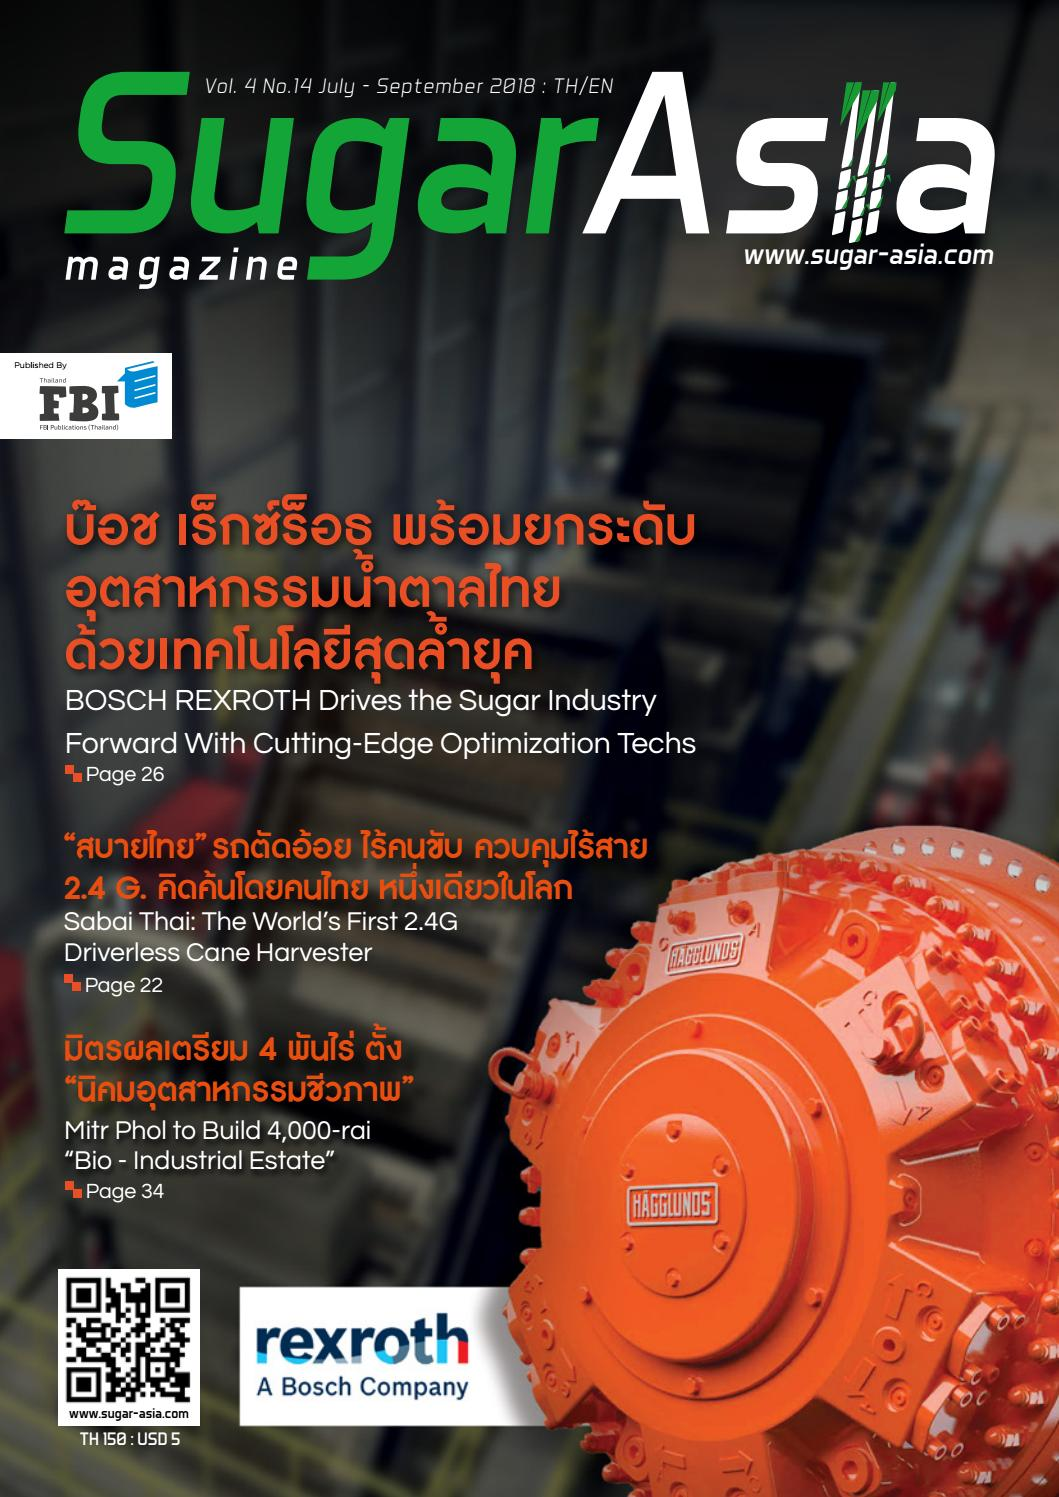 Sugar Asia Magazine Vol  4 No 14 July - September 2018 by Sugar Asia